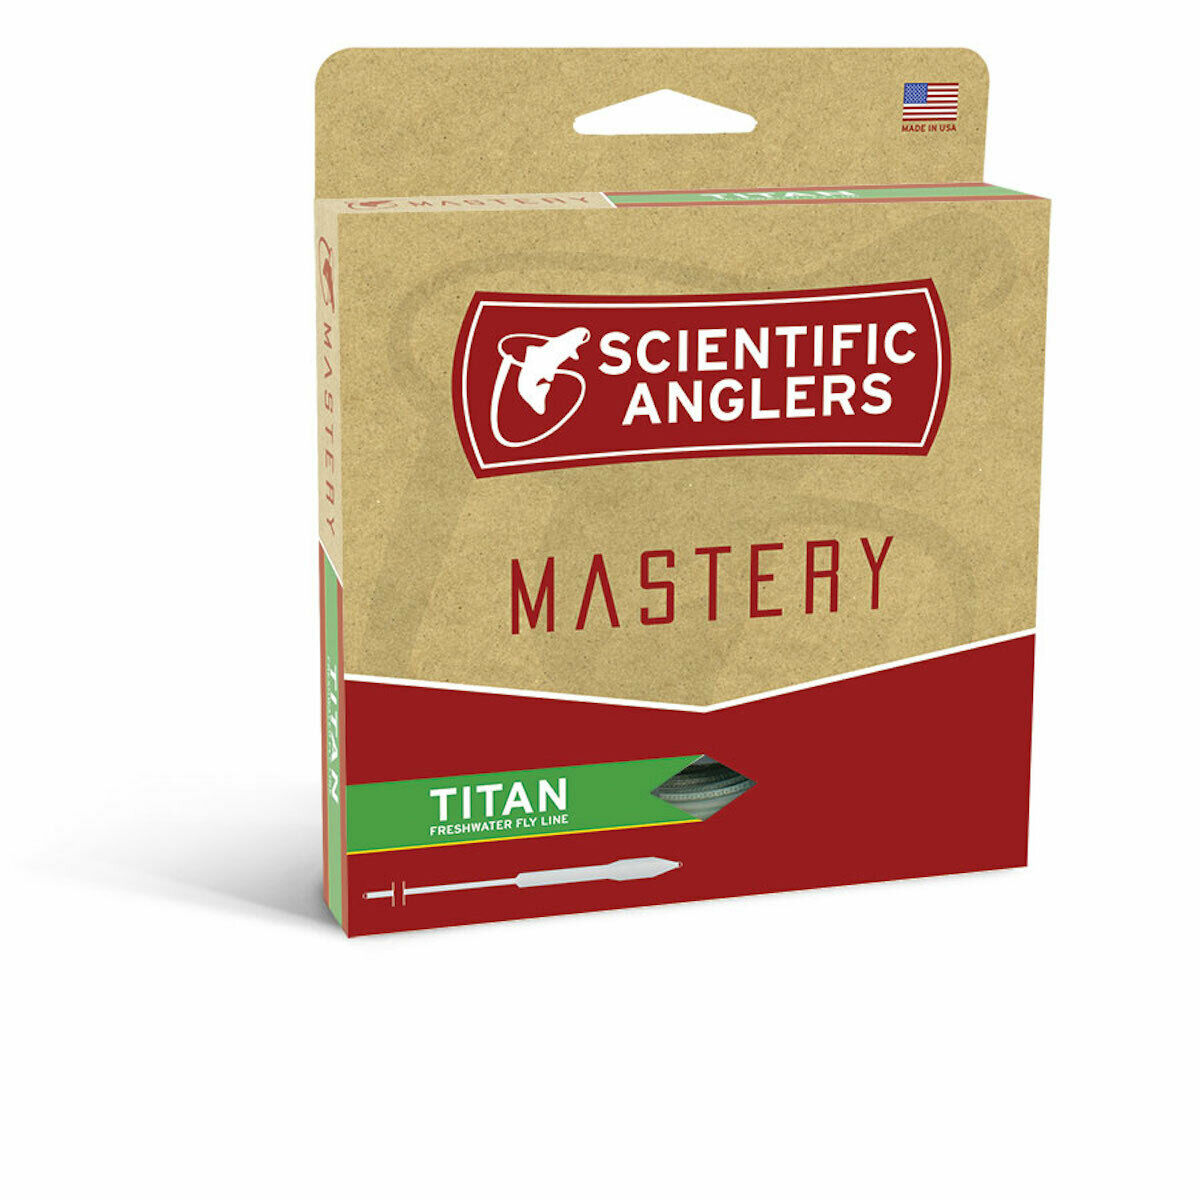 Scientific Anglers Mastery Titan WF9F Fly Line weight WF9F